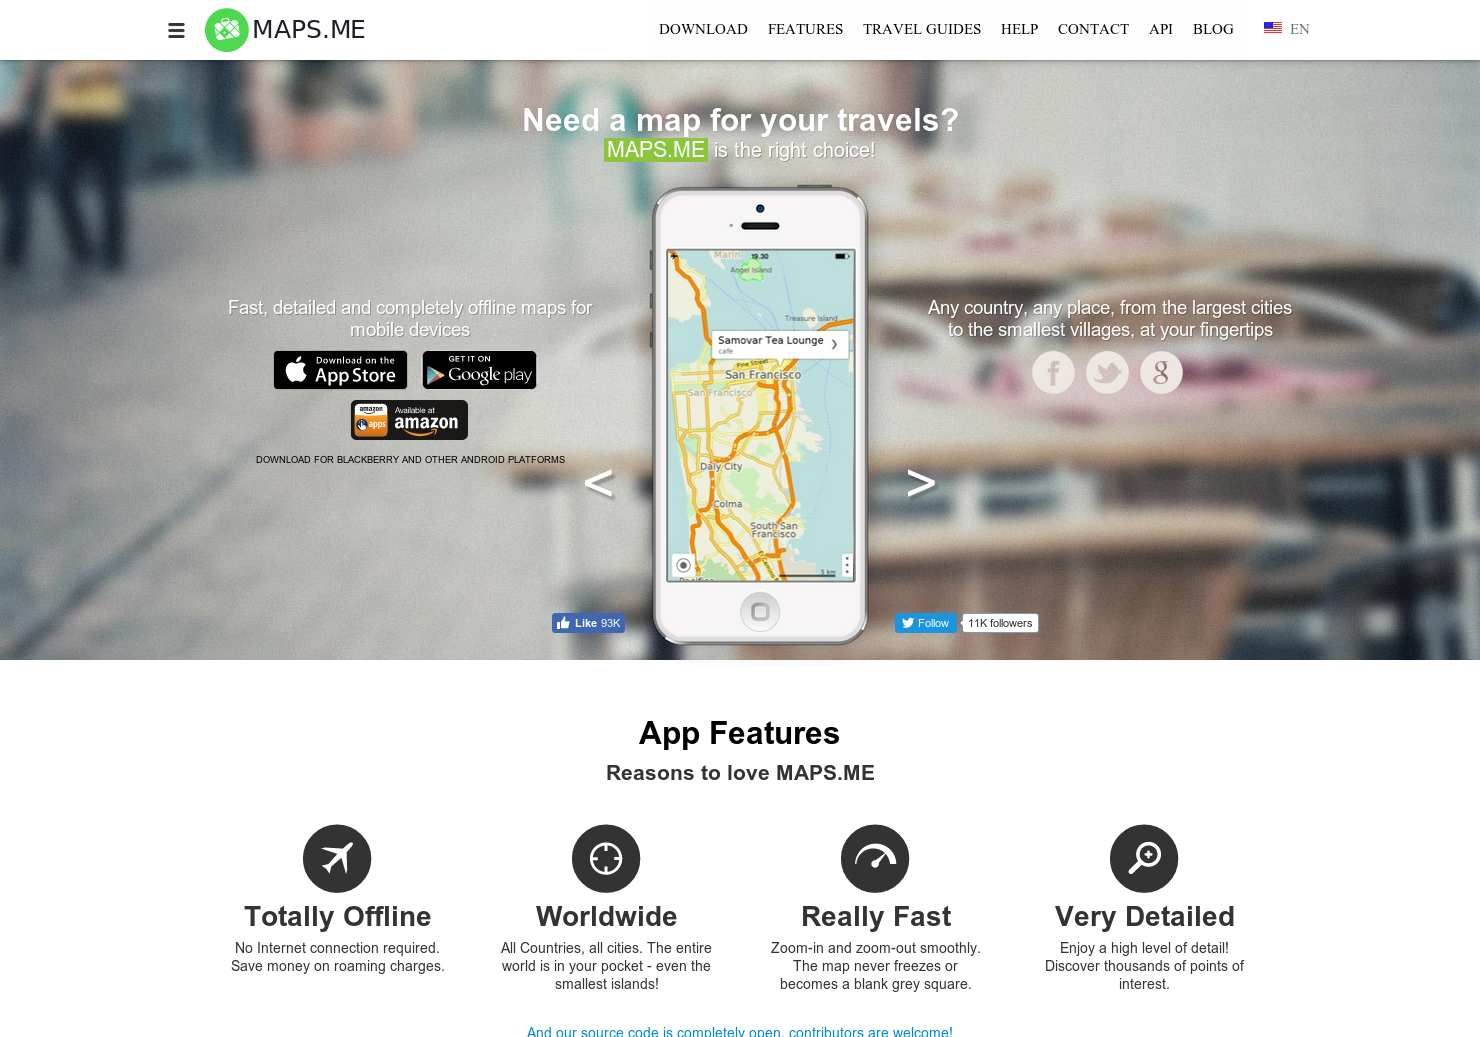 Maps me - Fast, detailed & completely offline maps for mobile devices